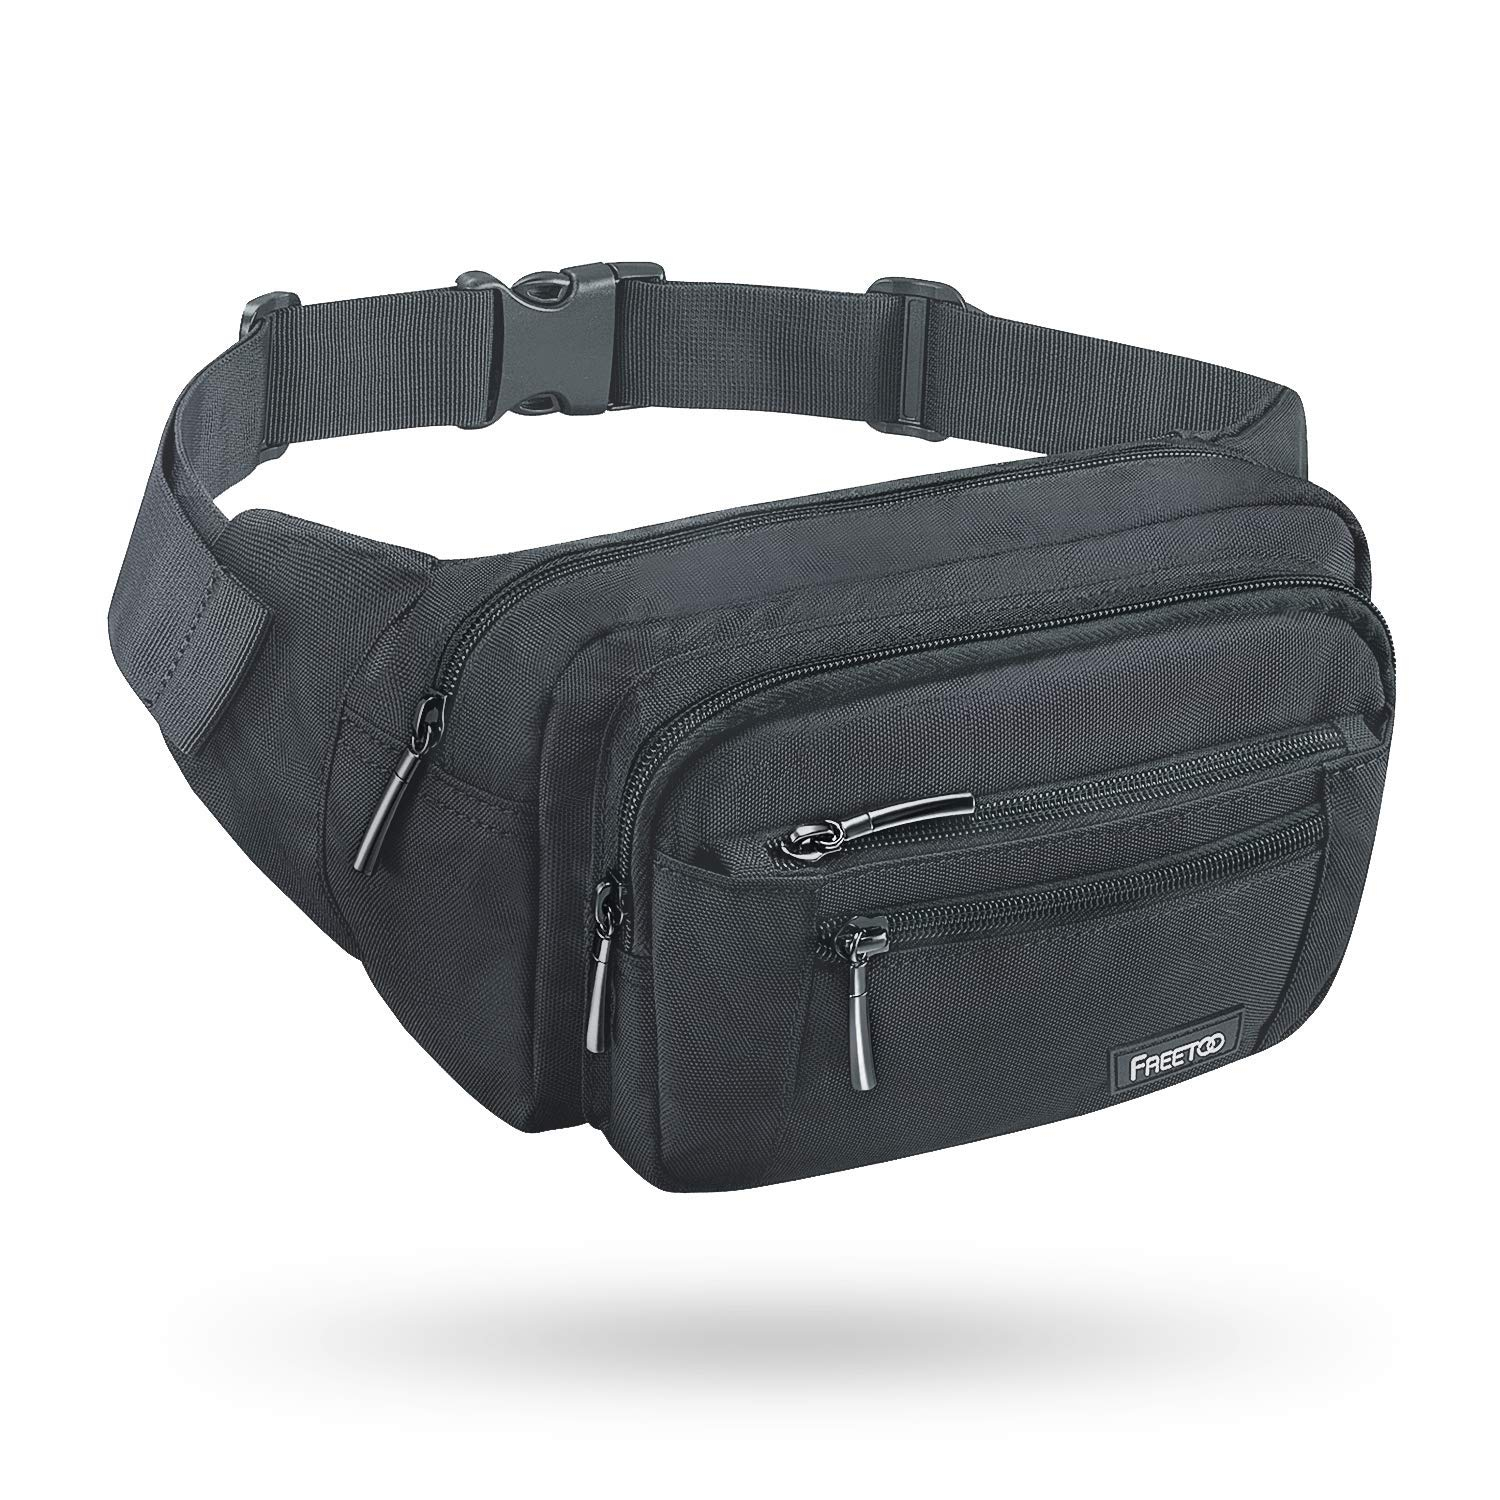 FREETOO Waist Pack Bag Fanny Pack for Men&Women Hip Bum Bag with Adjustable Strap for Outdoors Workout Traveling Casual Running Hiking Cycling (Gray) by FREETOO